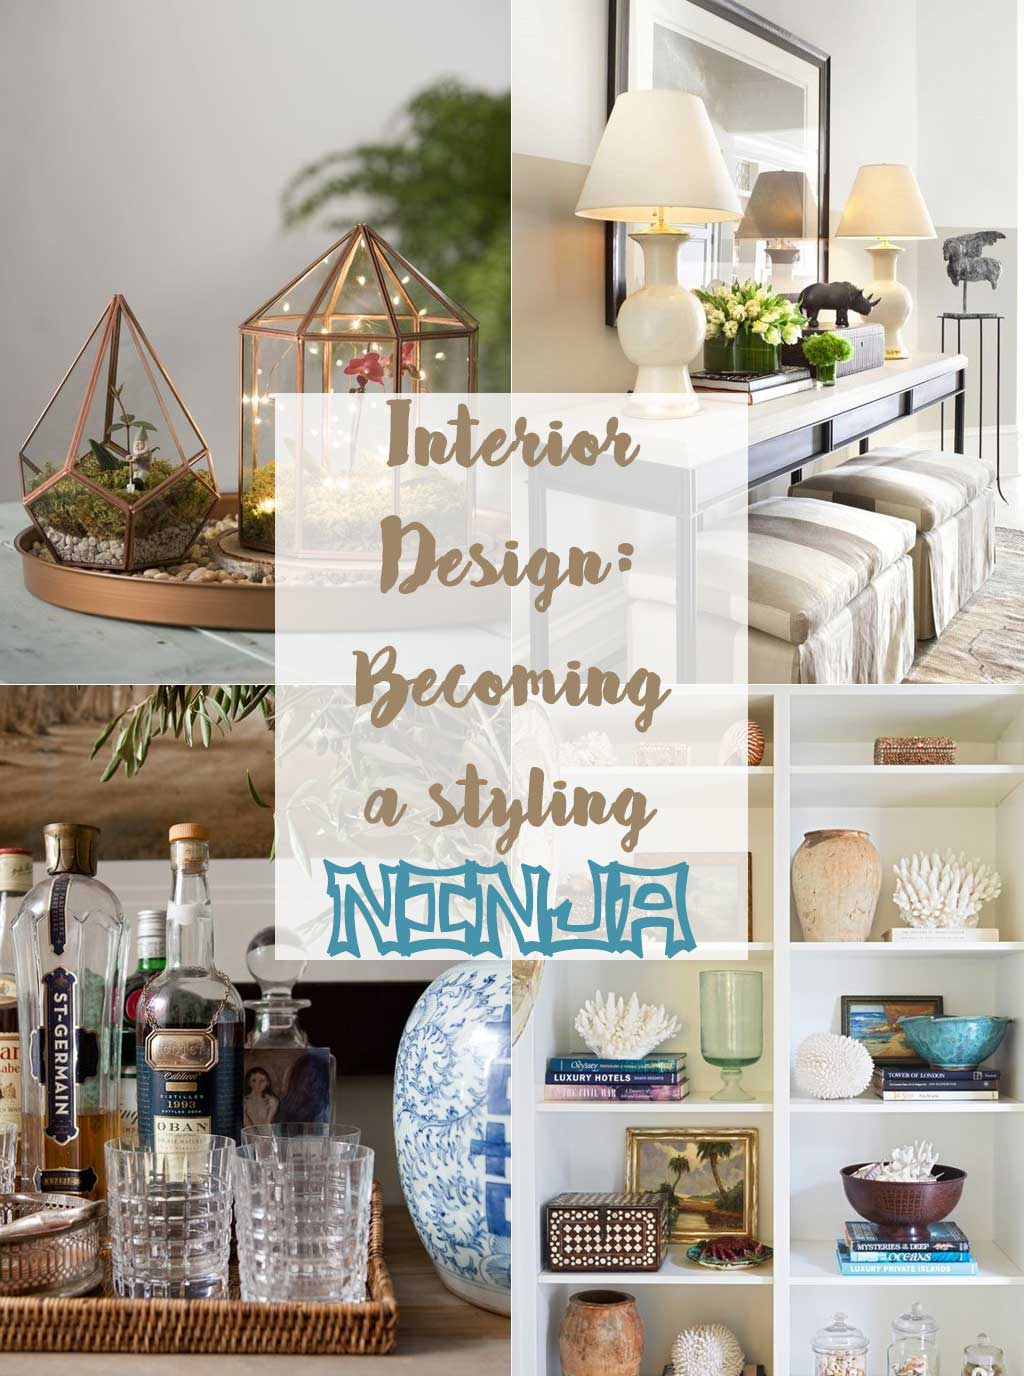 Interior Design : Becoming a Styling Ninja - Decorating Ideas - Hutsly